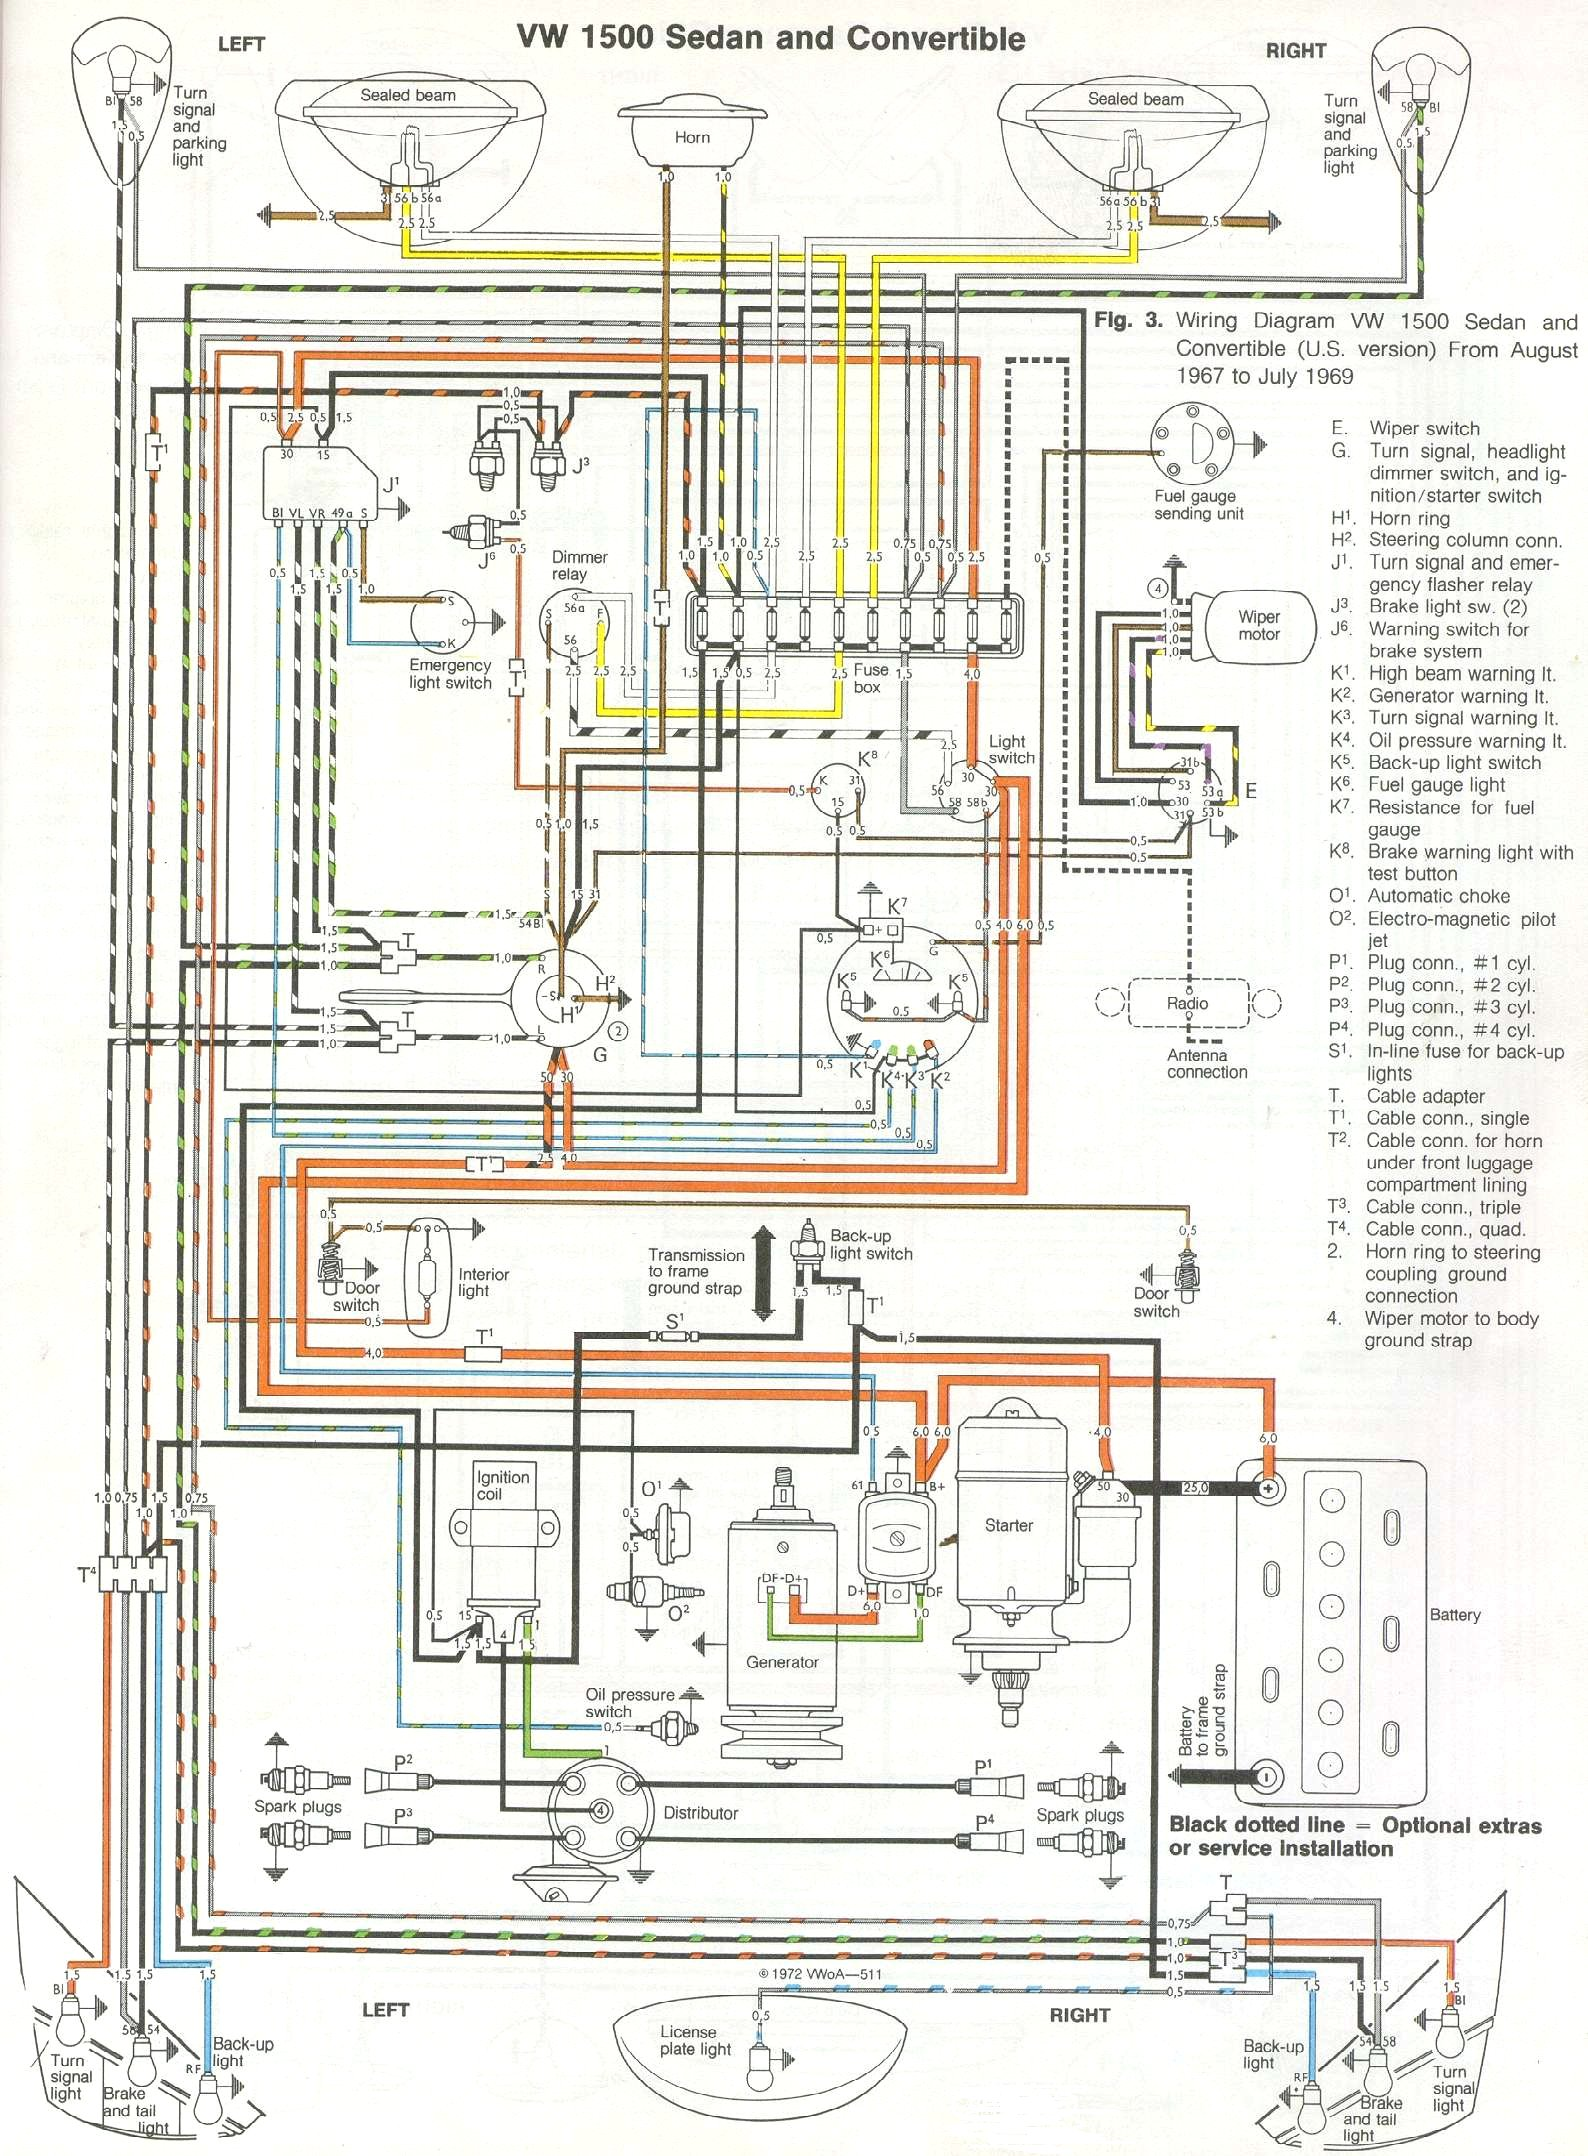 bug_6869 1969 71 beetle wiring diagram thegoldenbug com vw beetle wiring diagram at bakdesigns.co